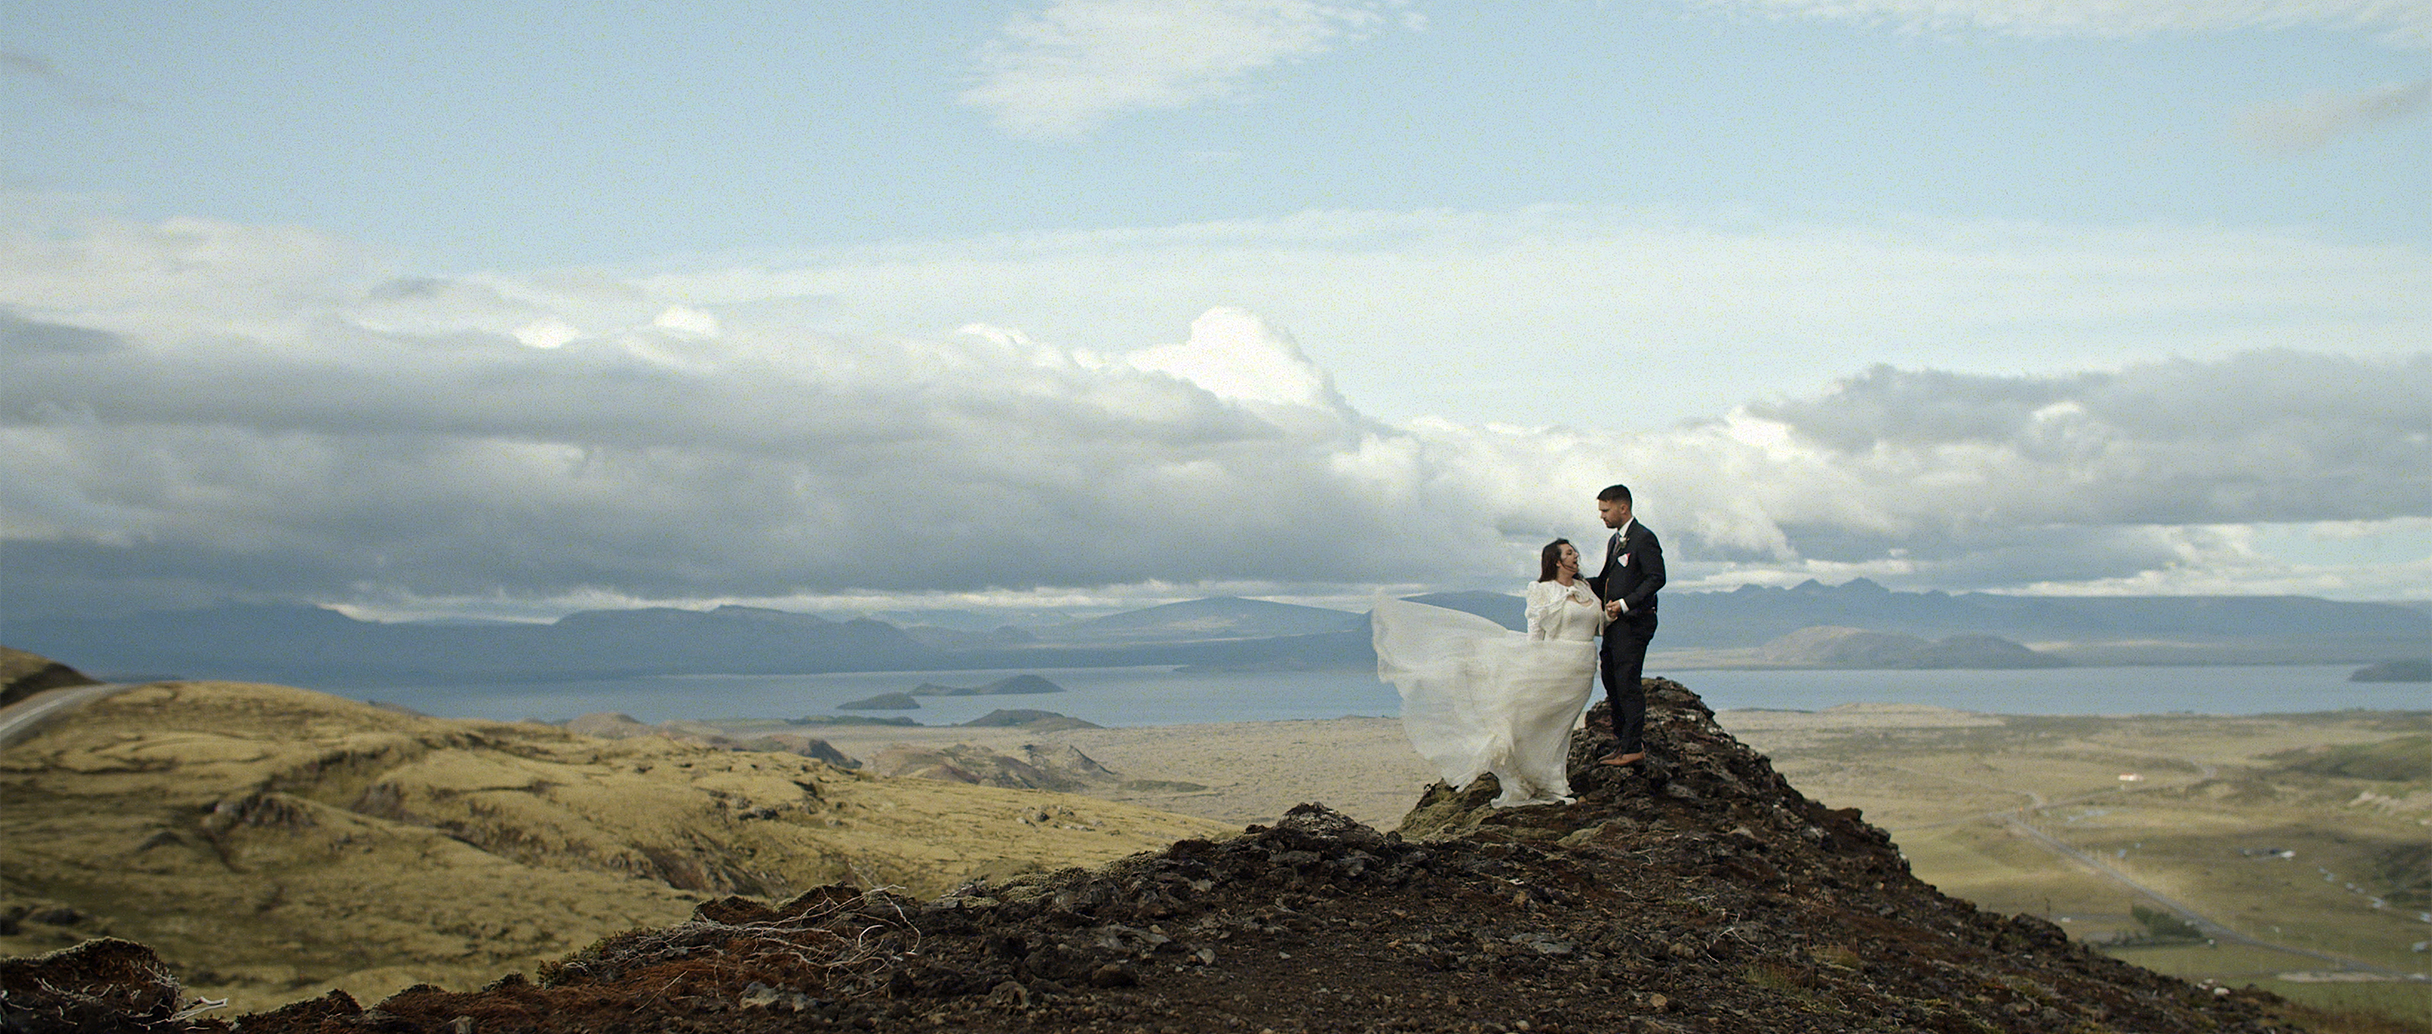 Megan + Rupert | Thingvellir, Iceland | a church